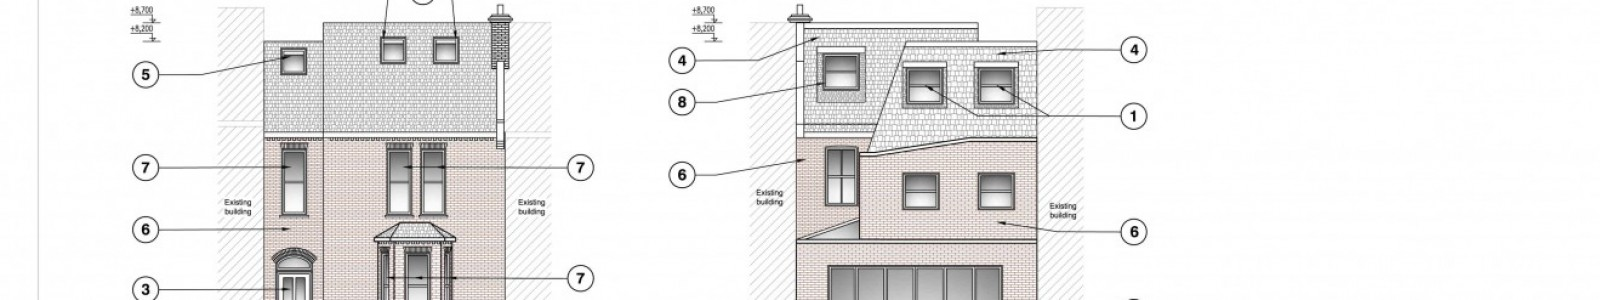 Roof extension, double storey side extension, single storey rear extension